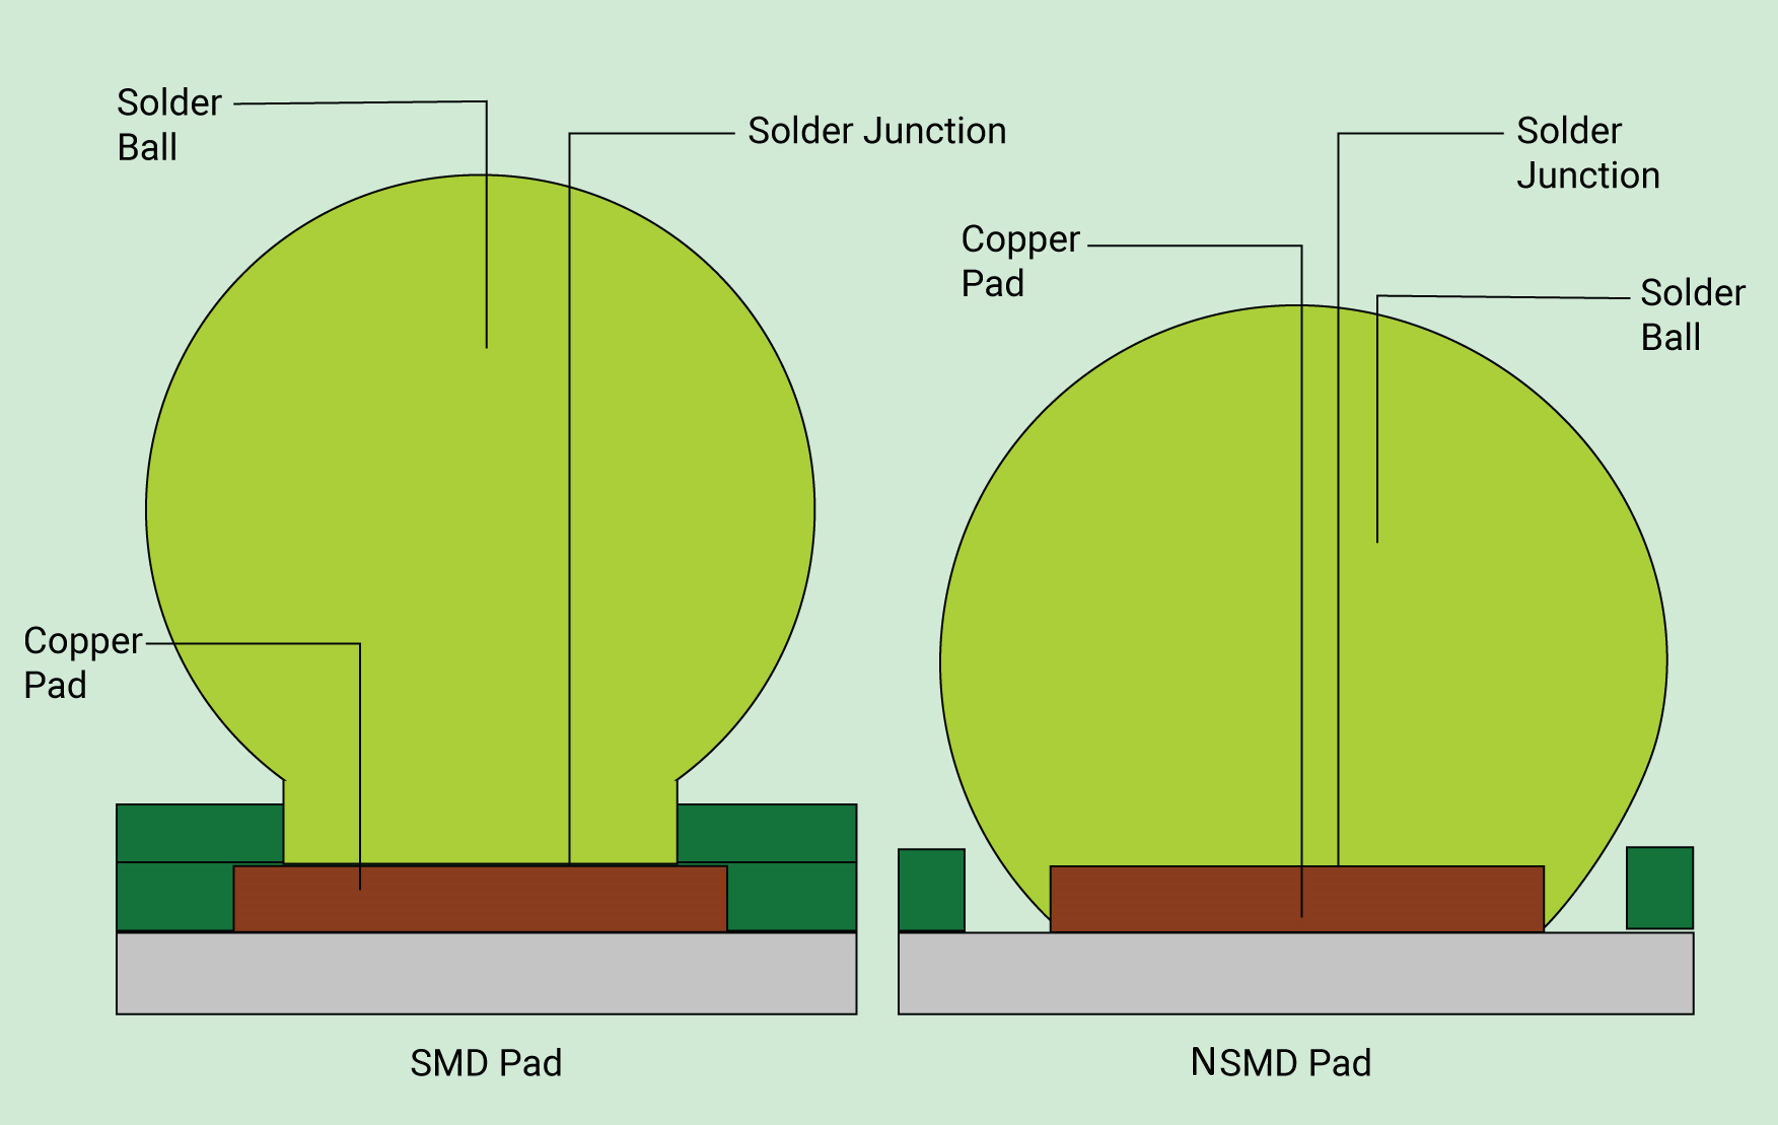 SMD and NSMD pads in PCB design